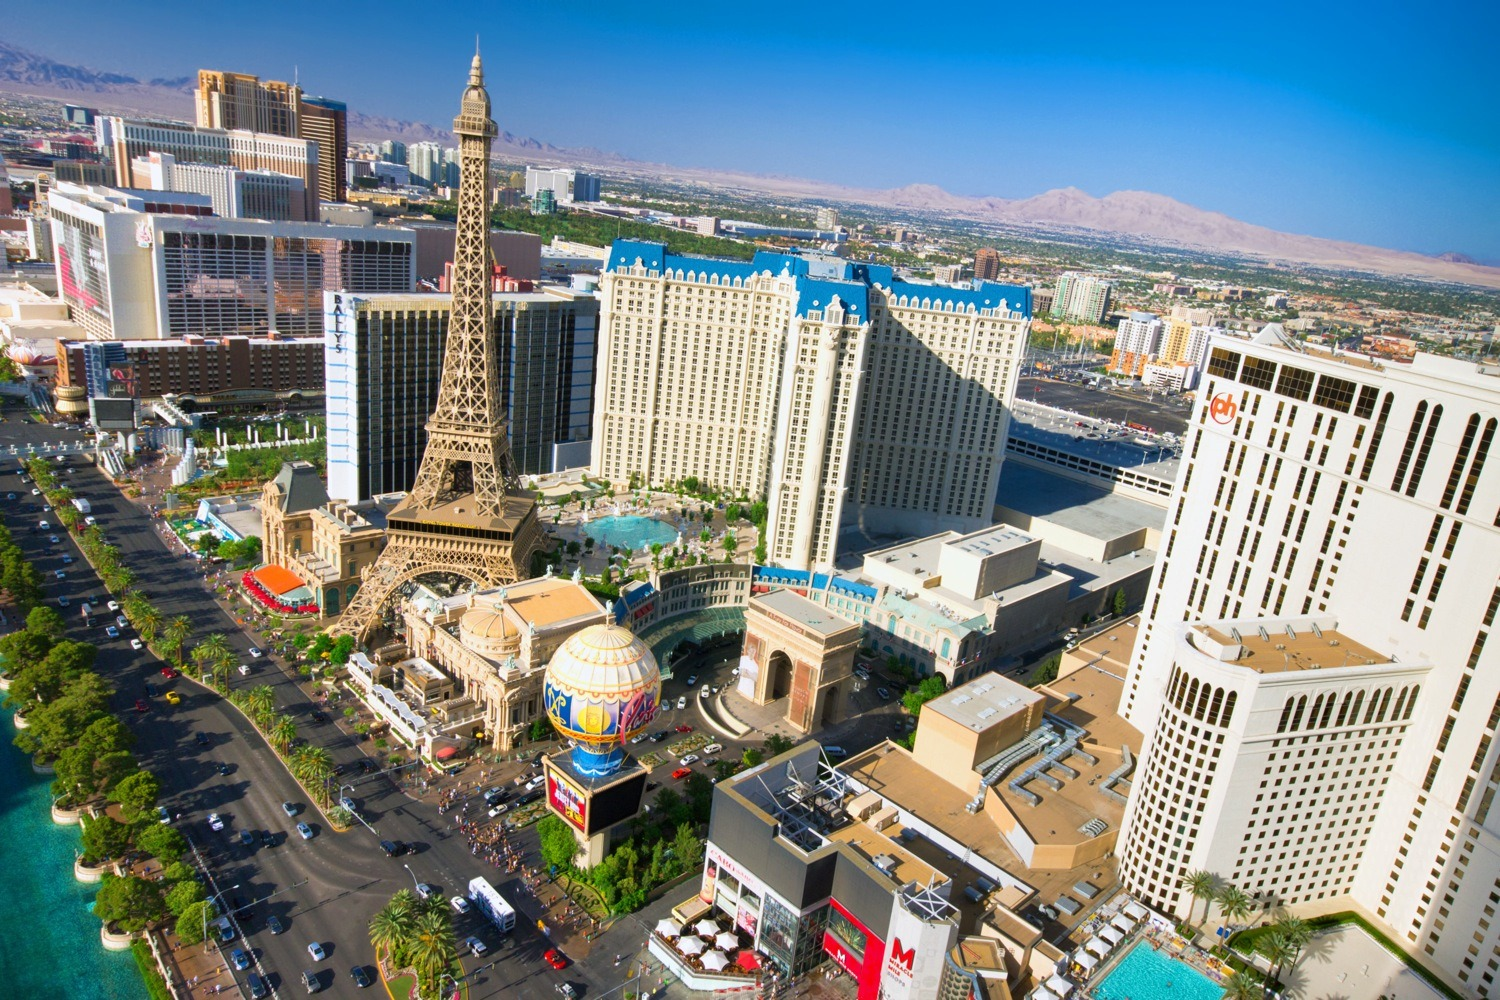 10 tips for an ace trip to Las Vegas